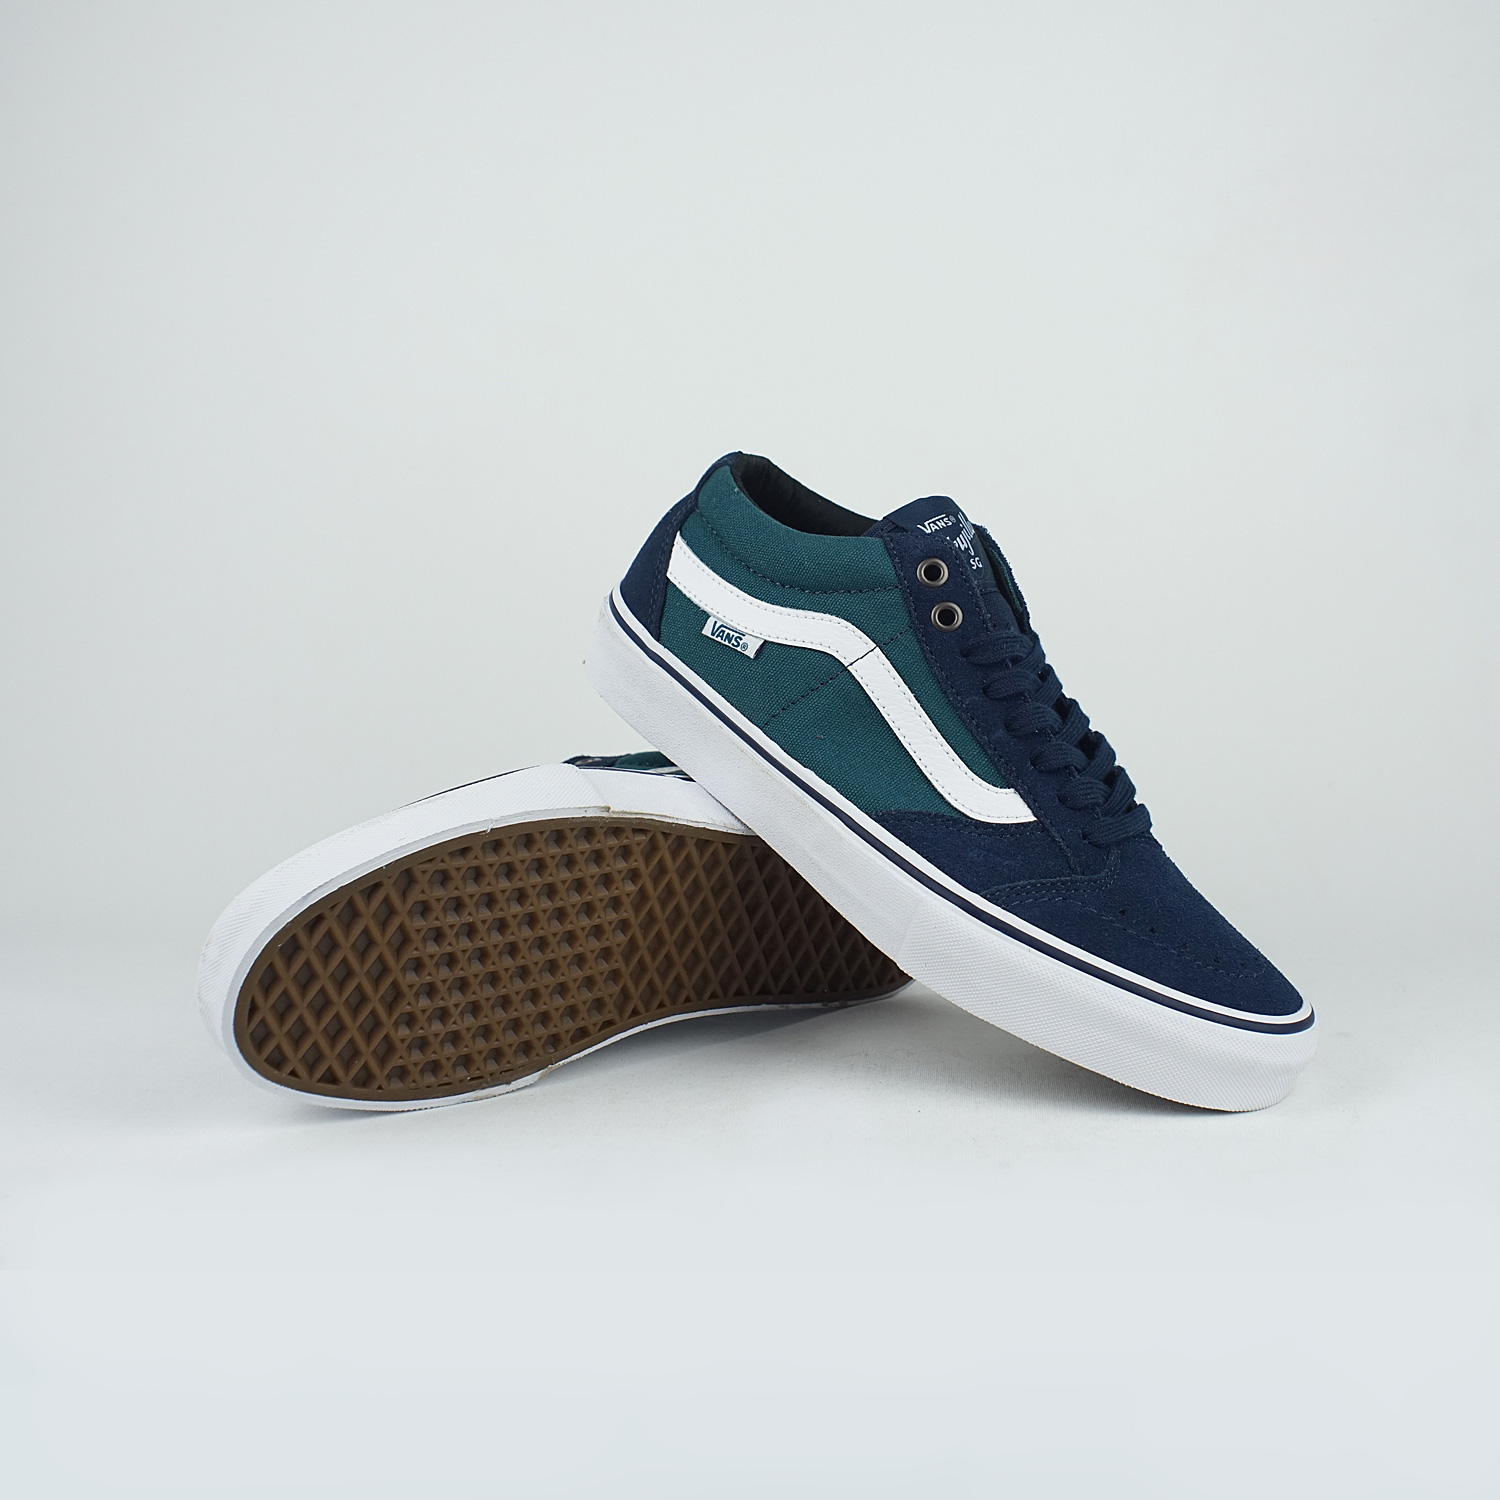 ef780f7b22 Vans Slip On Pro Rubber Dress.VANS SLIP ON PRO RUBBER DRESS BLUE ...